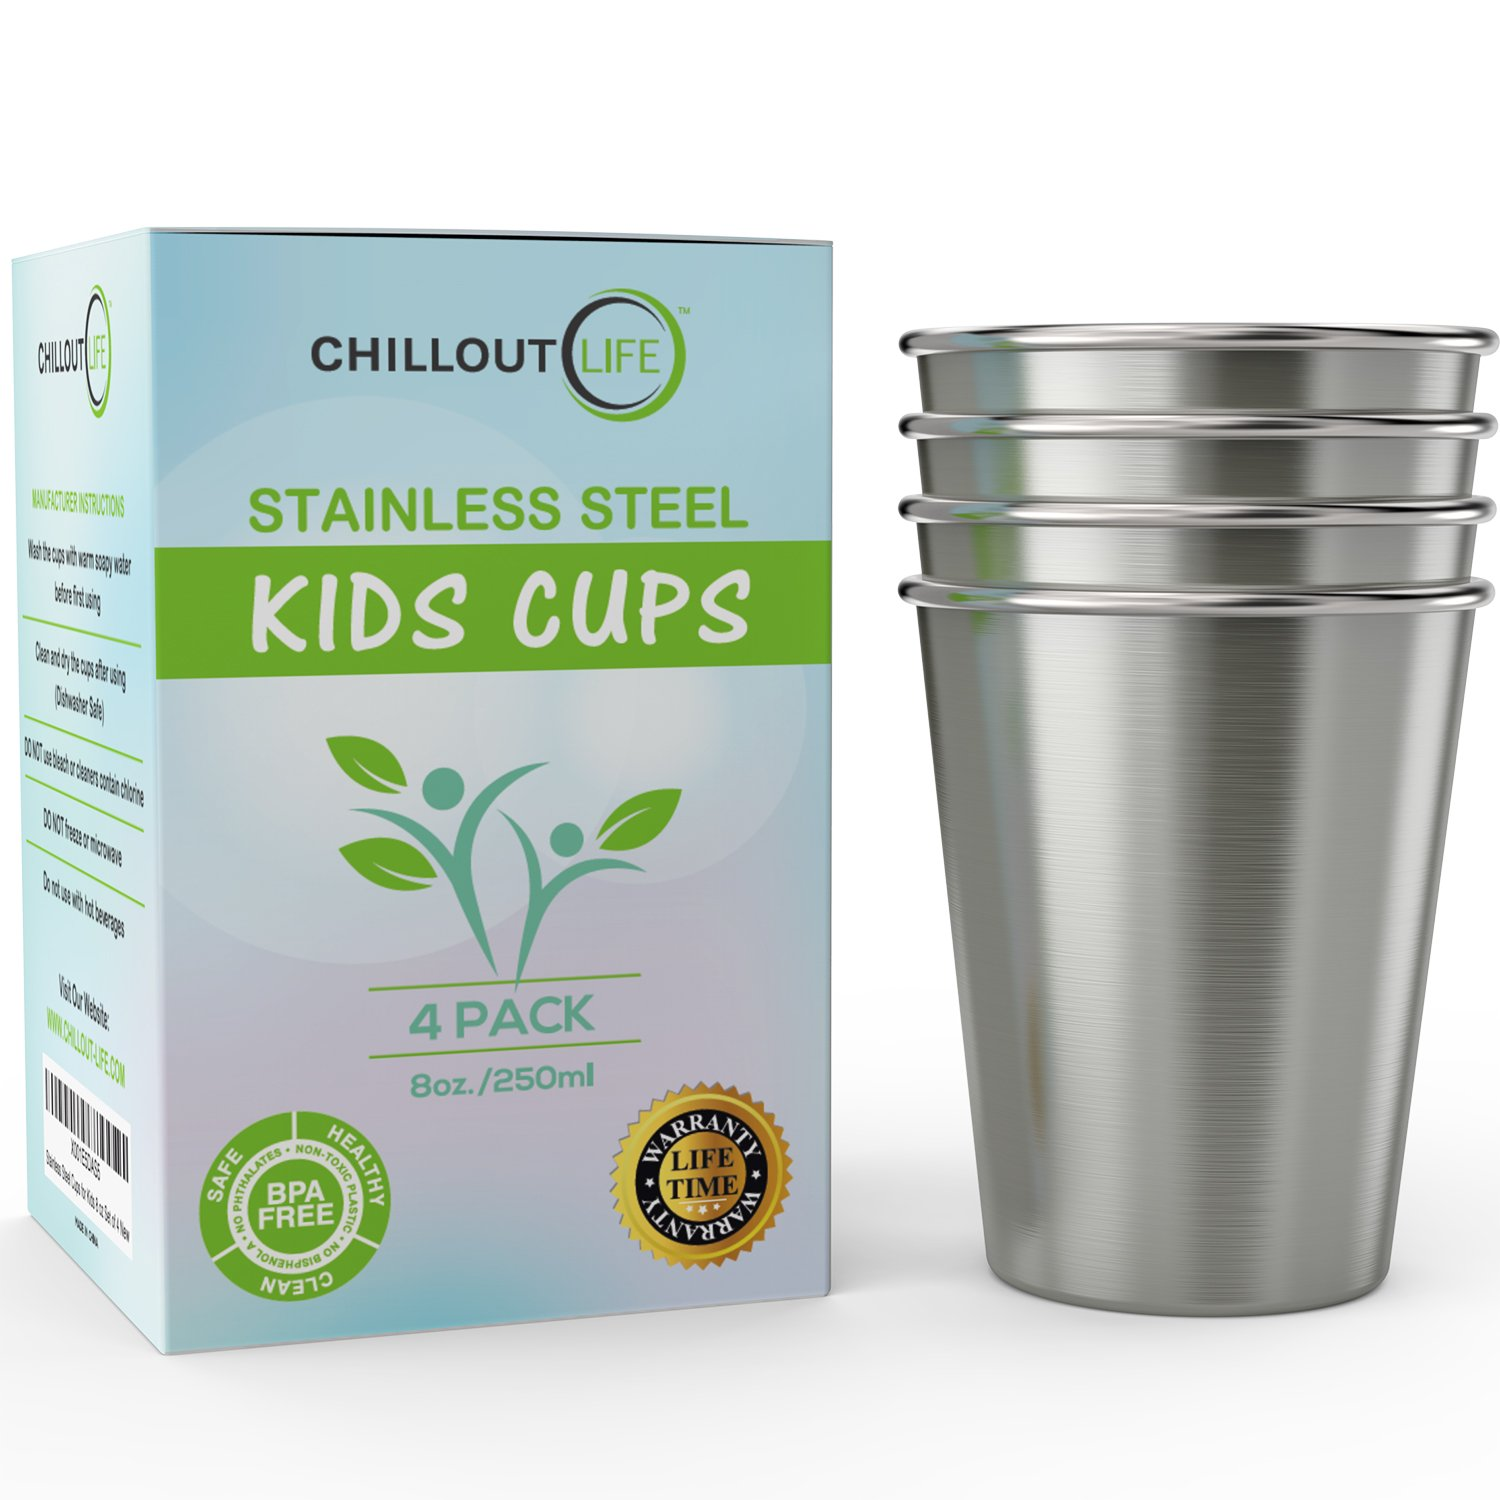 Stainless Steel Cups for Kids and Toddlers 8 oz - Stainless Steel Sippy Cups for Home & Outdoor Activities, BPA Free Healthy Unbreakable Premium Metal Drinking Glasses (4-Pack) by CHILLOUT LIFE